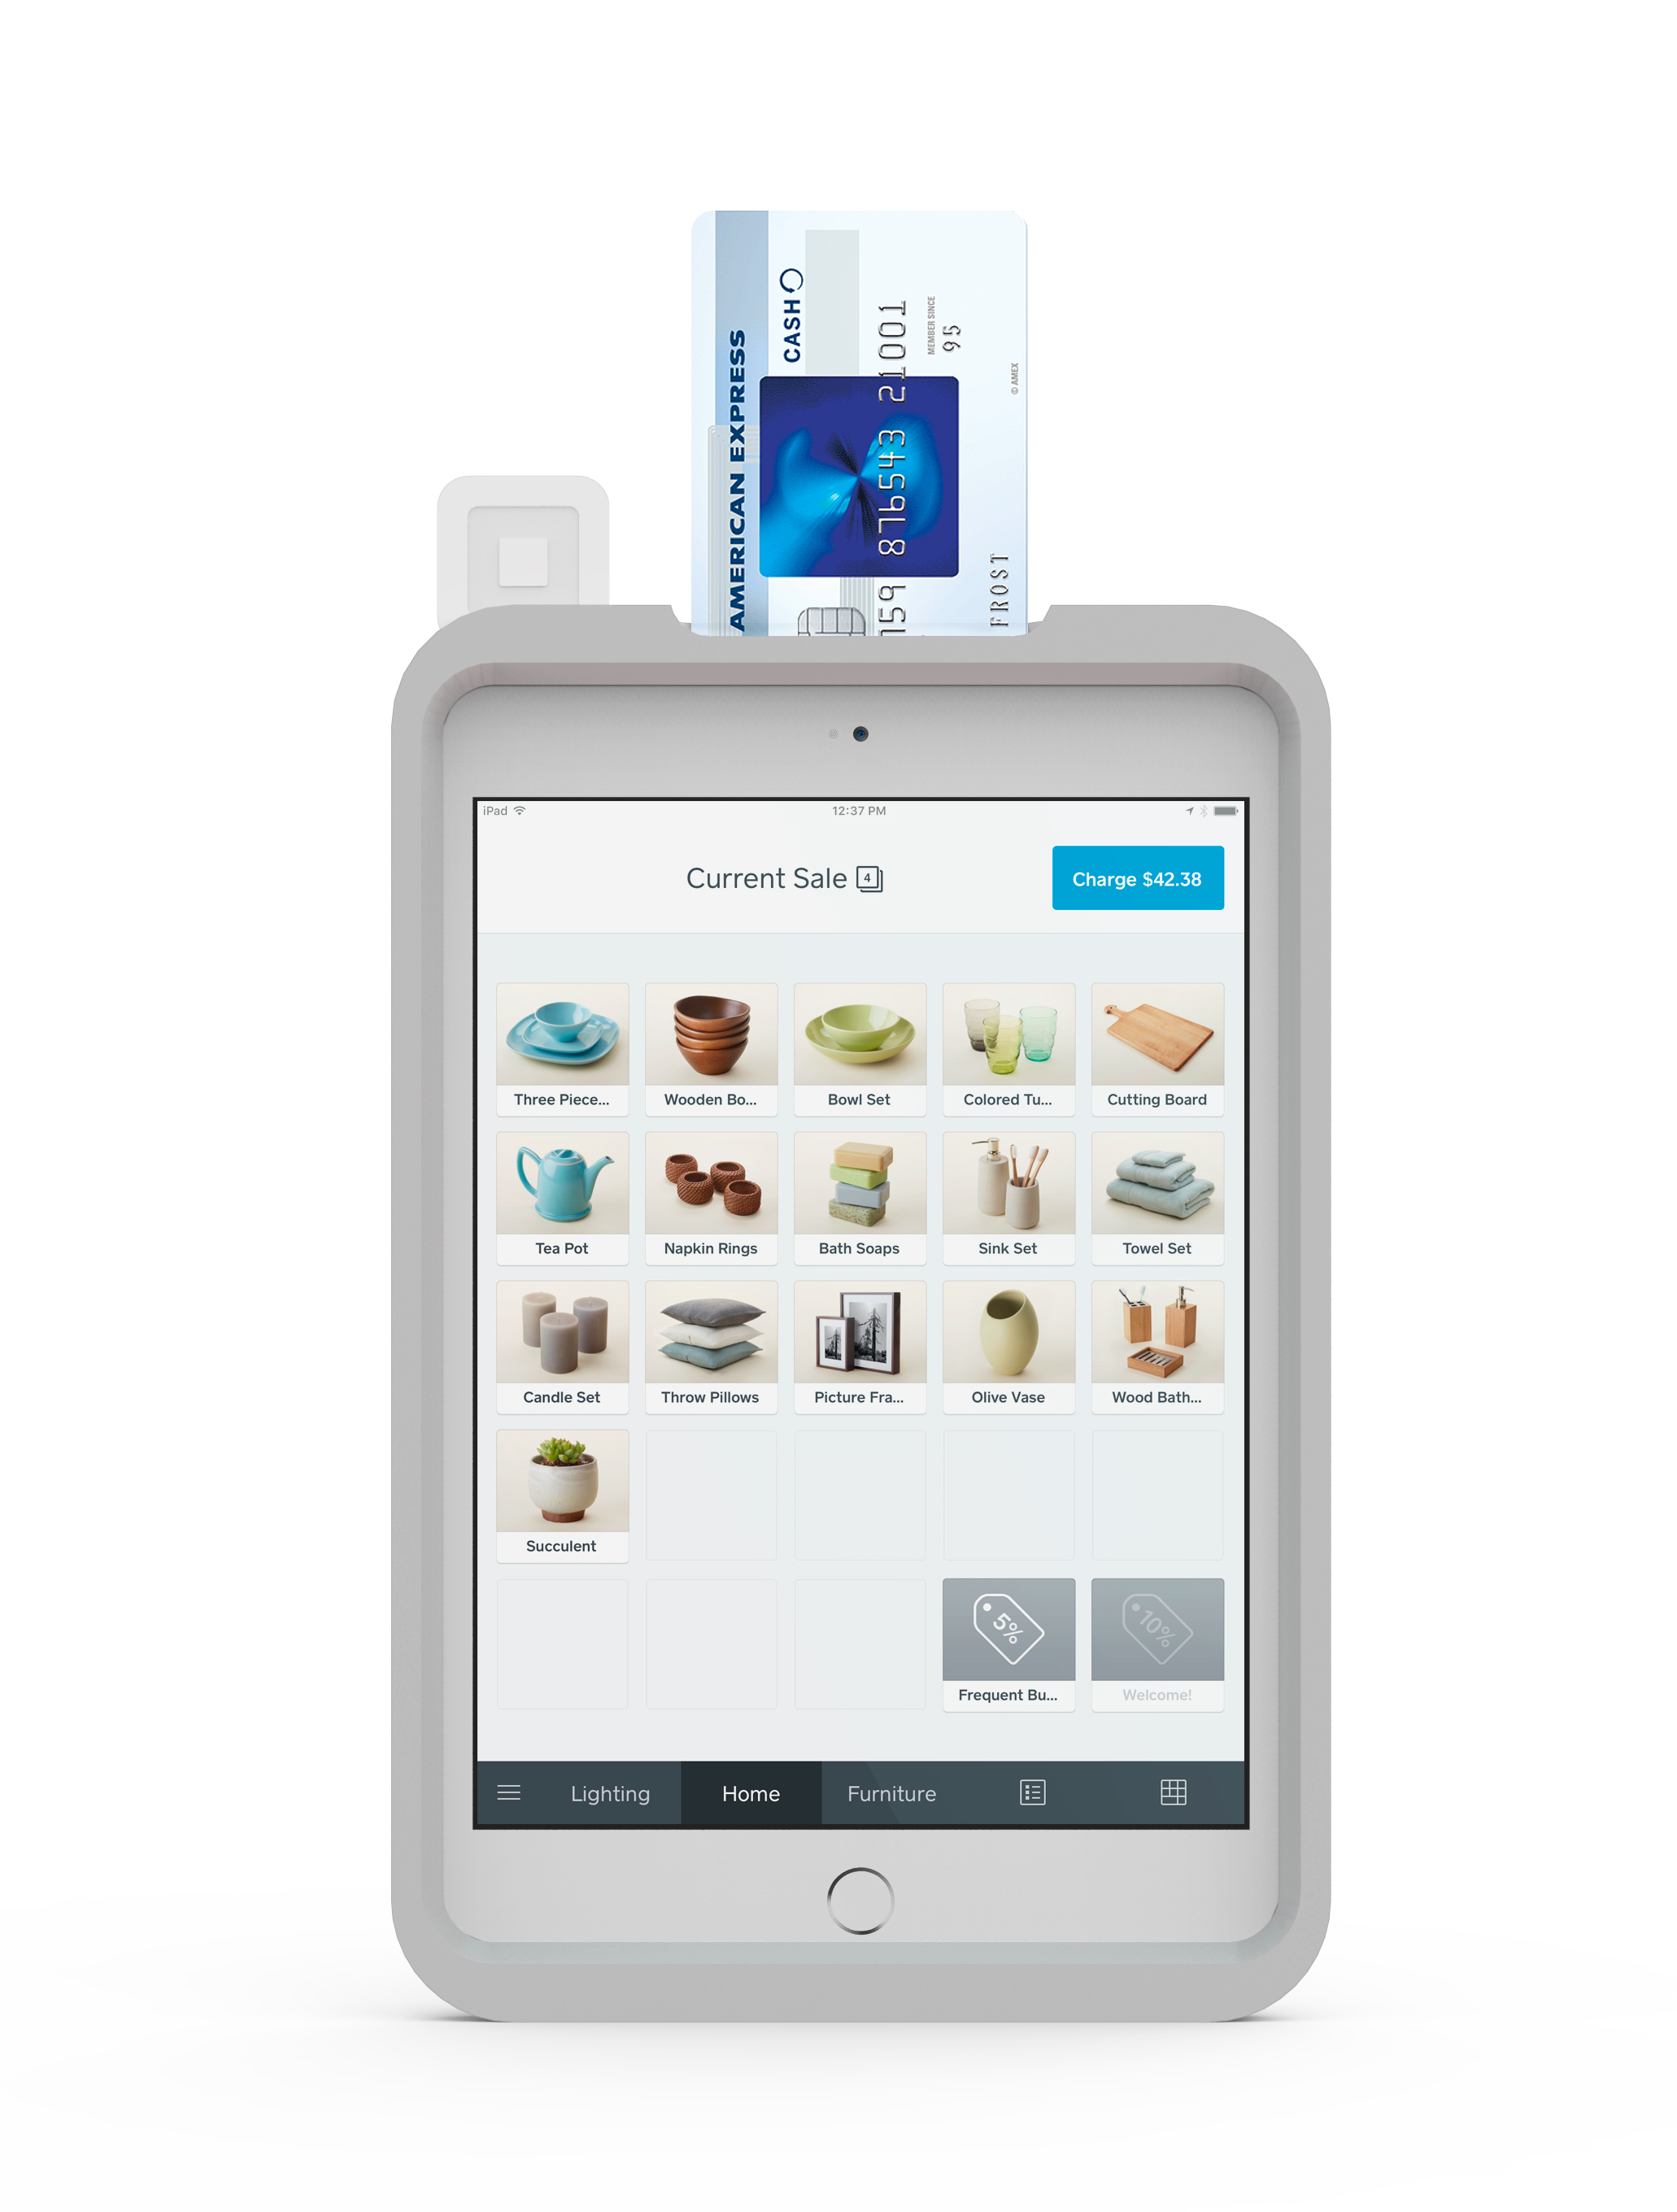 New l7 case with square contactless chip reader ideal for taking full size reheart Choice Image